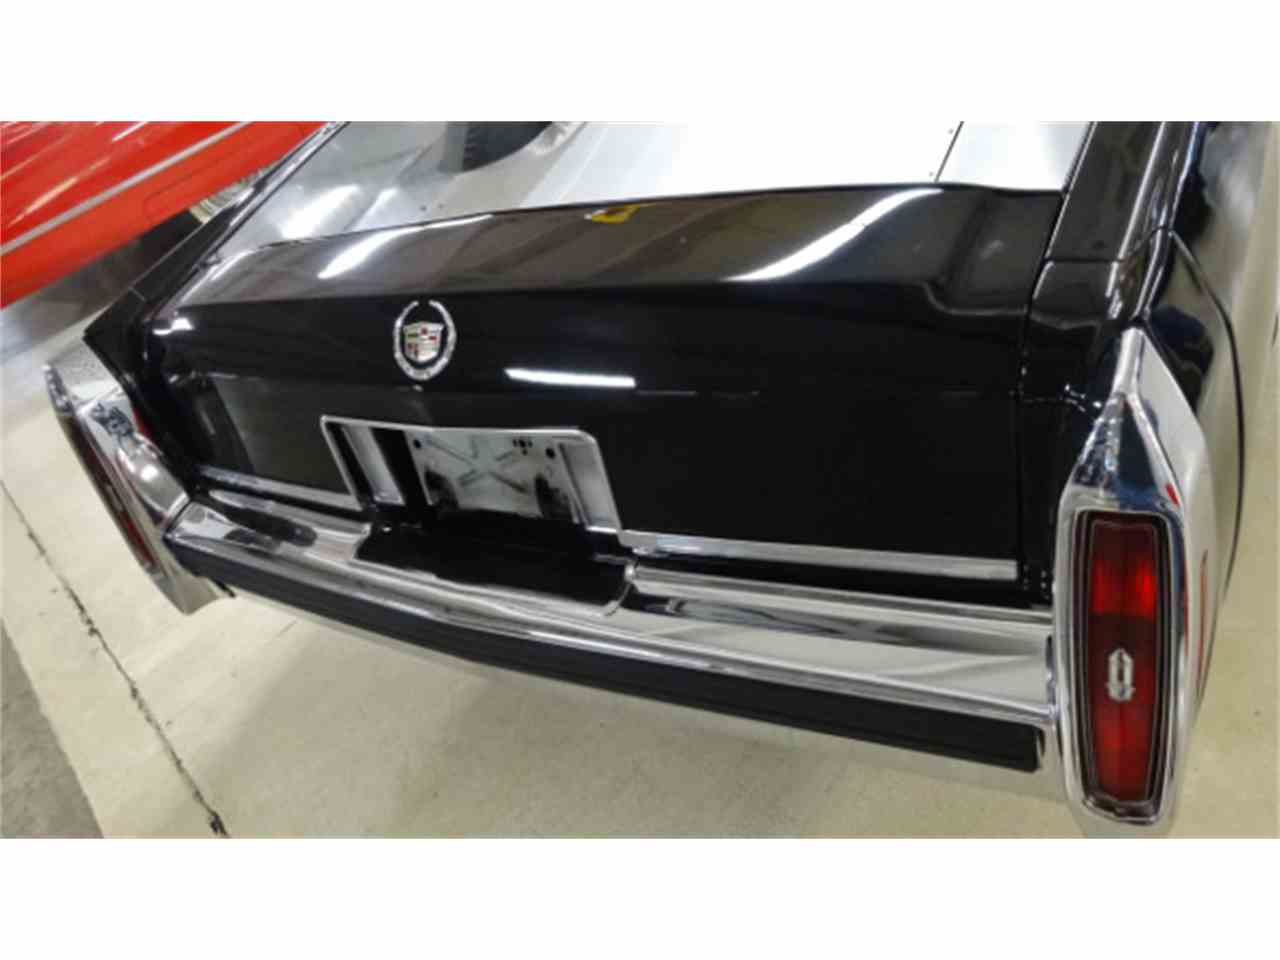 Large Picture of '81 Cadillac Fleetwood Brougham - $11,995.00 - JQKH